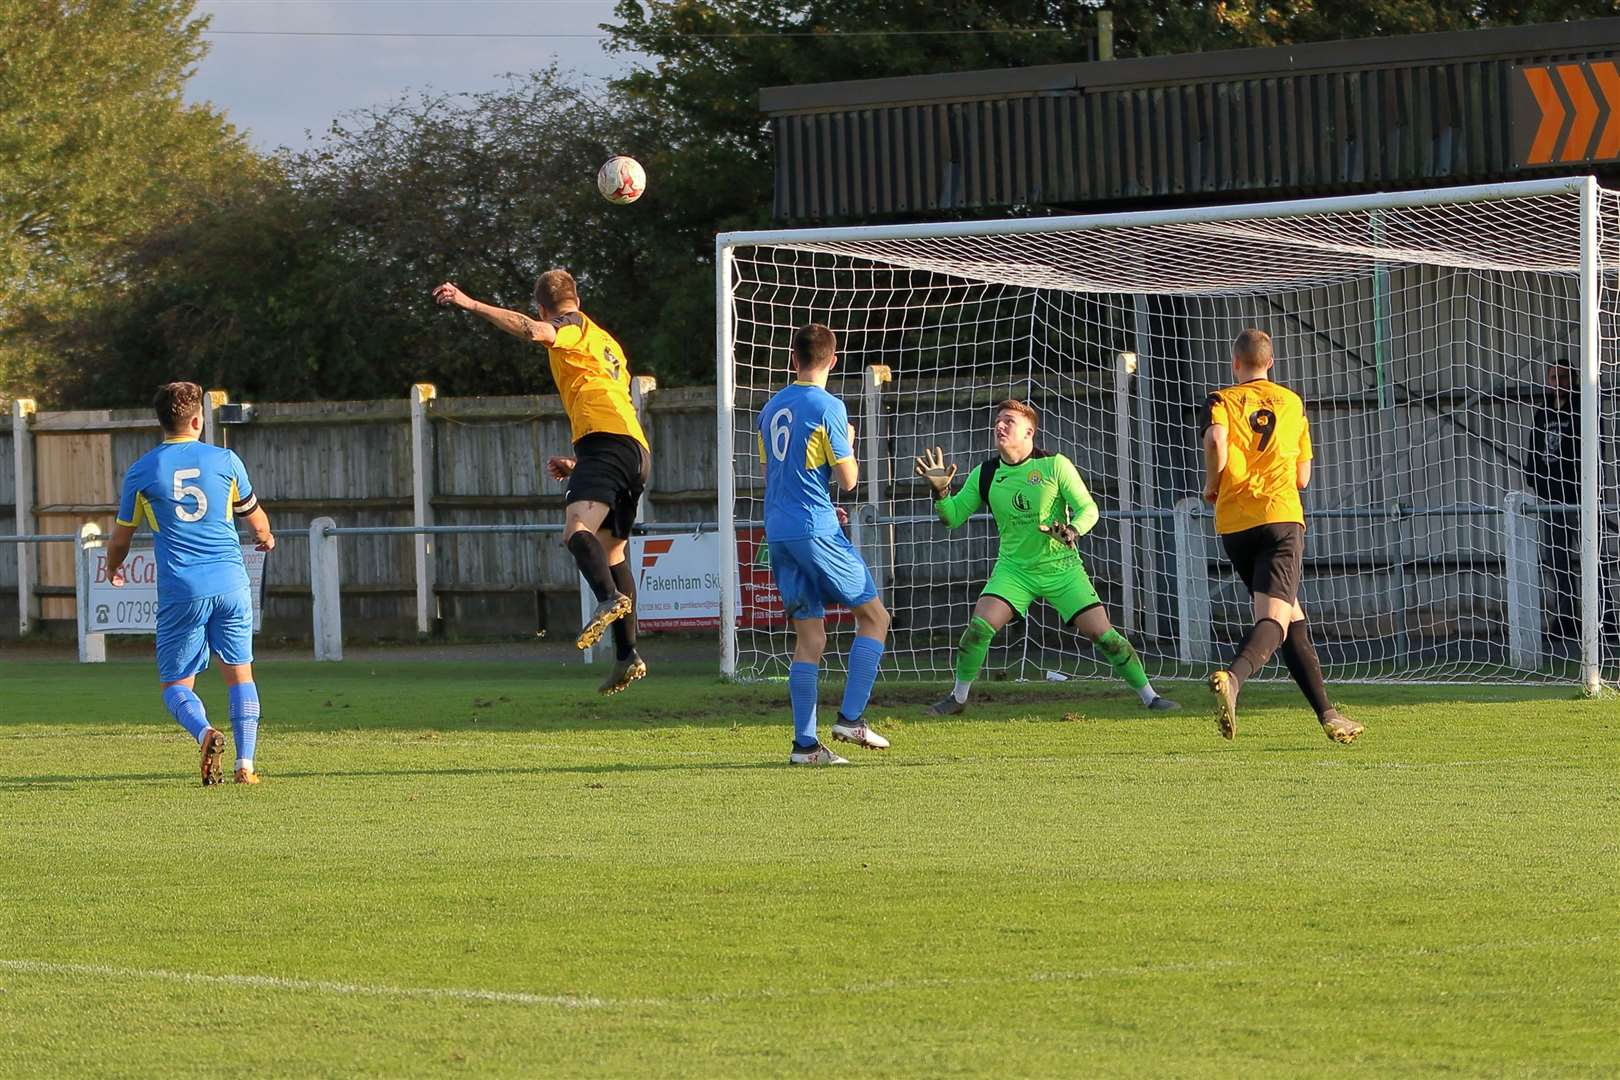 Fakenham's Josh Youngs scoring the winner with a great header in their 2-1 win over March on Saturday. (19798484)